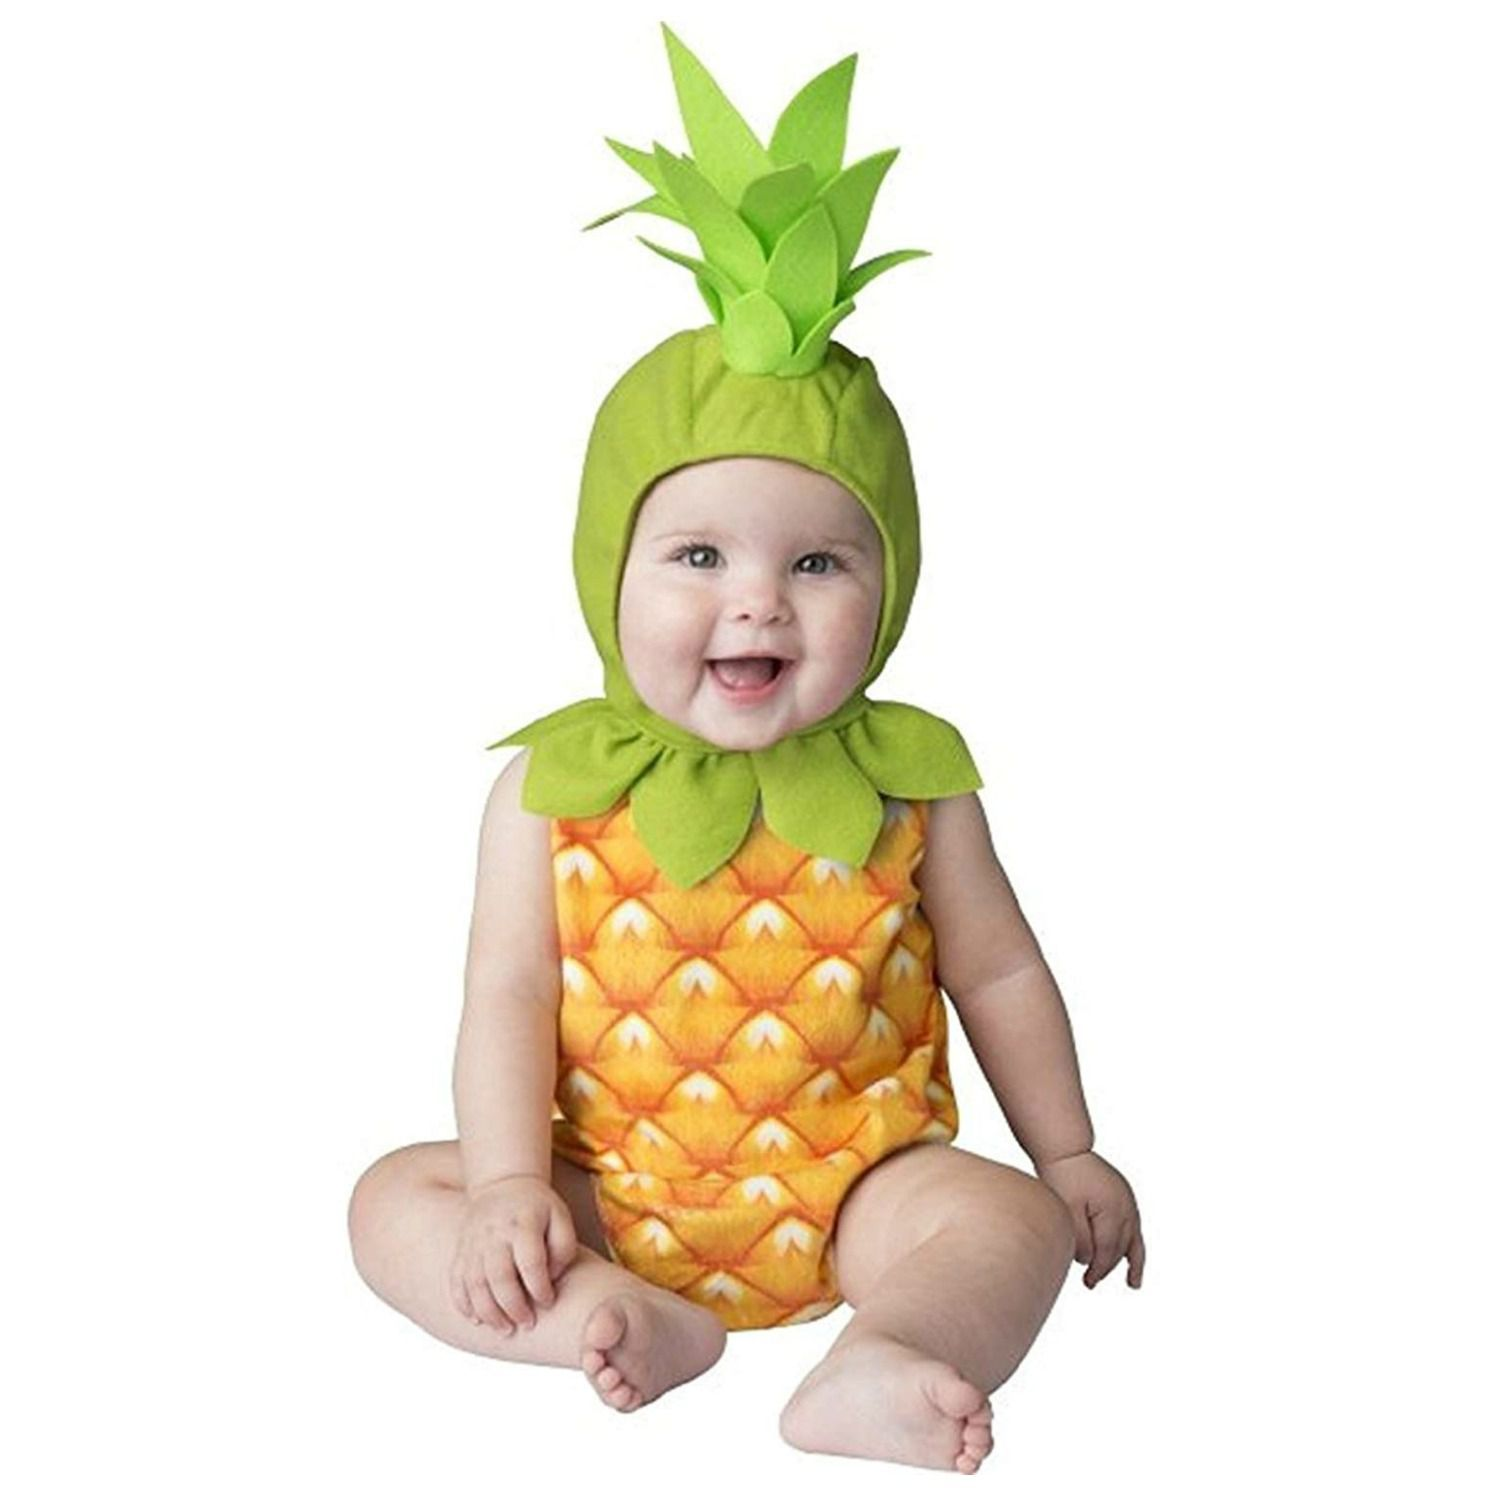 23 best baby halloween costumes of 2018 - adorable baby costume ideas